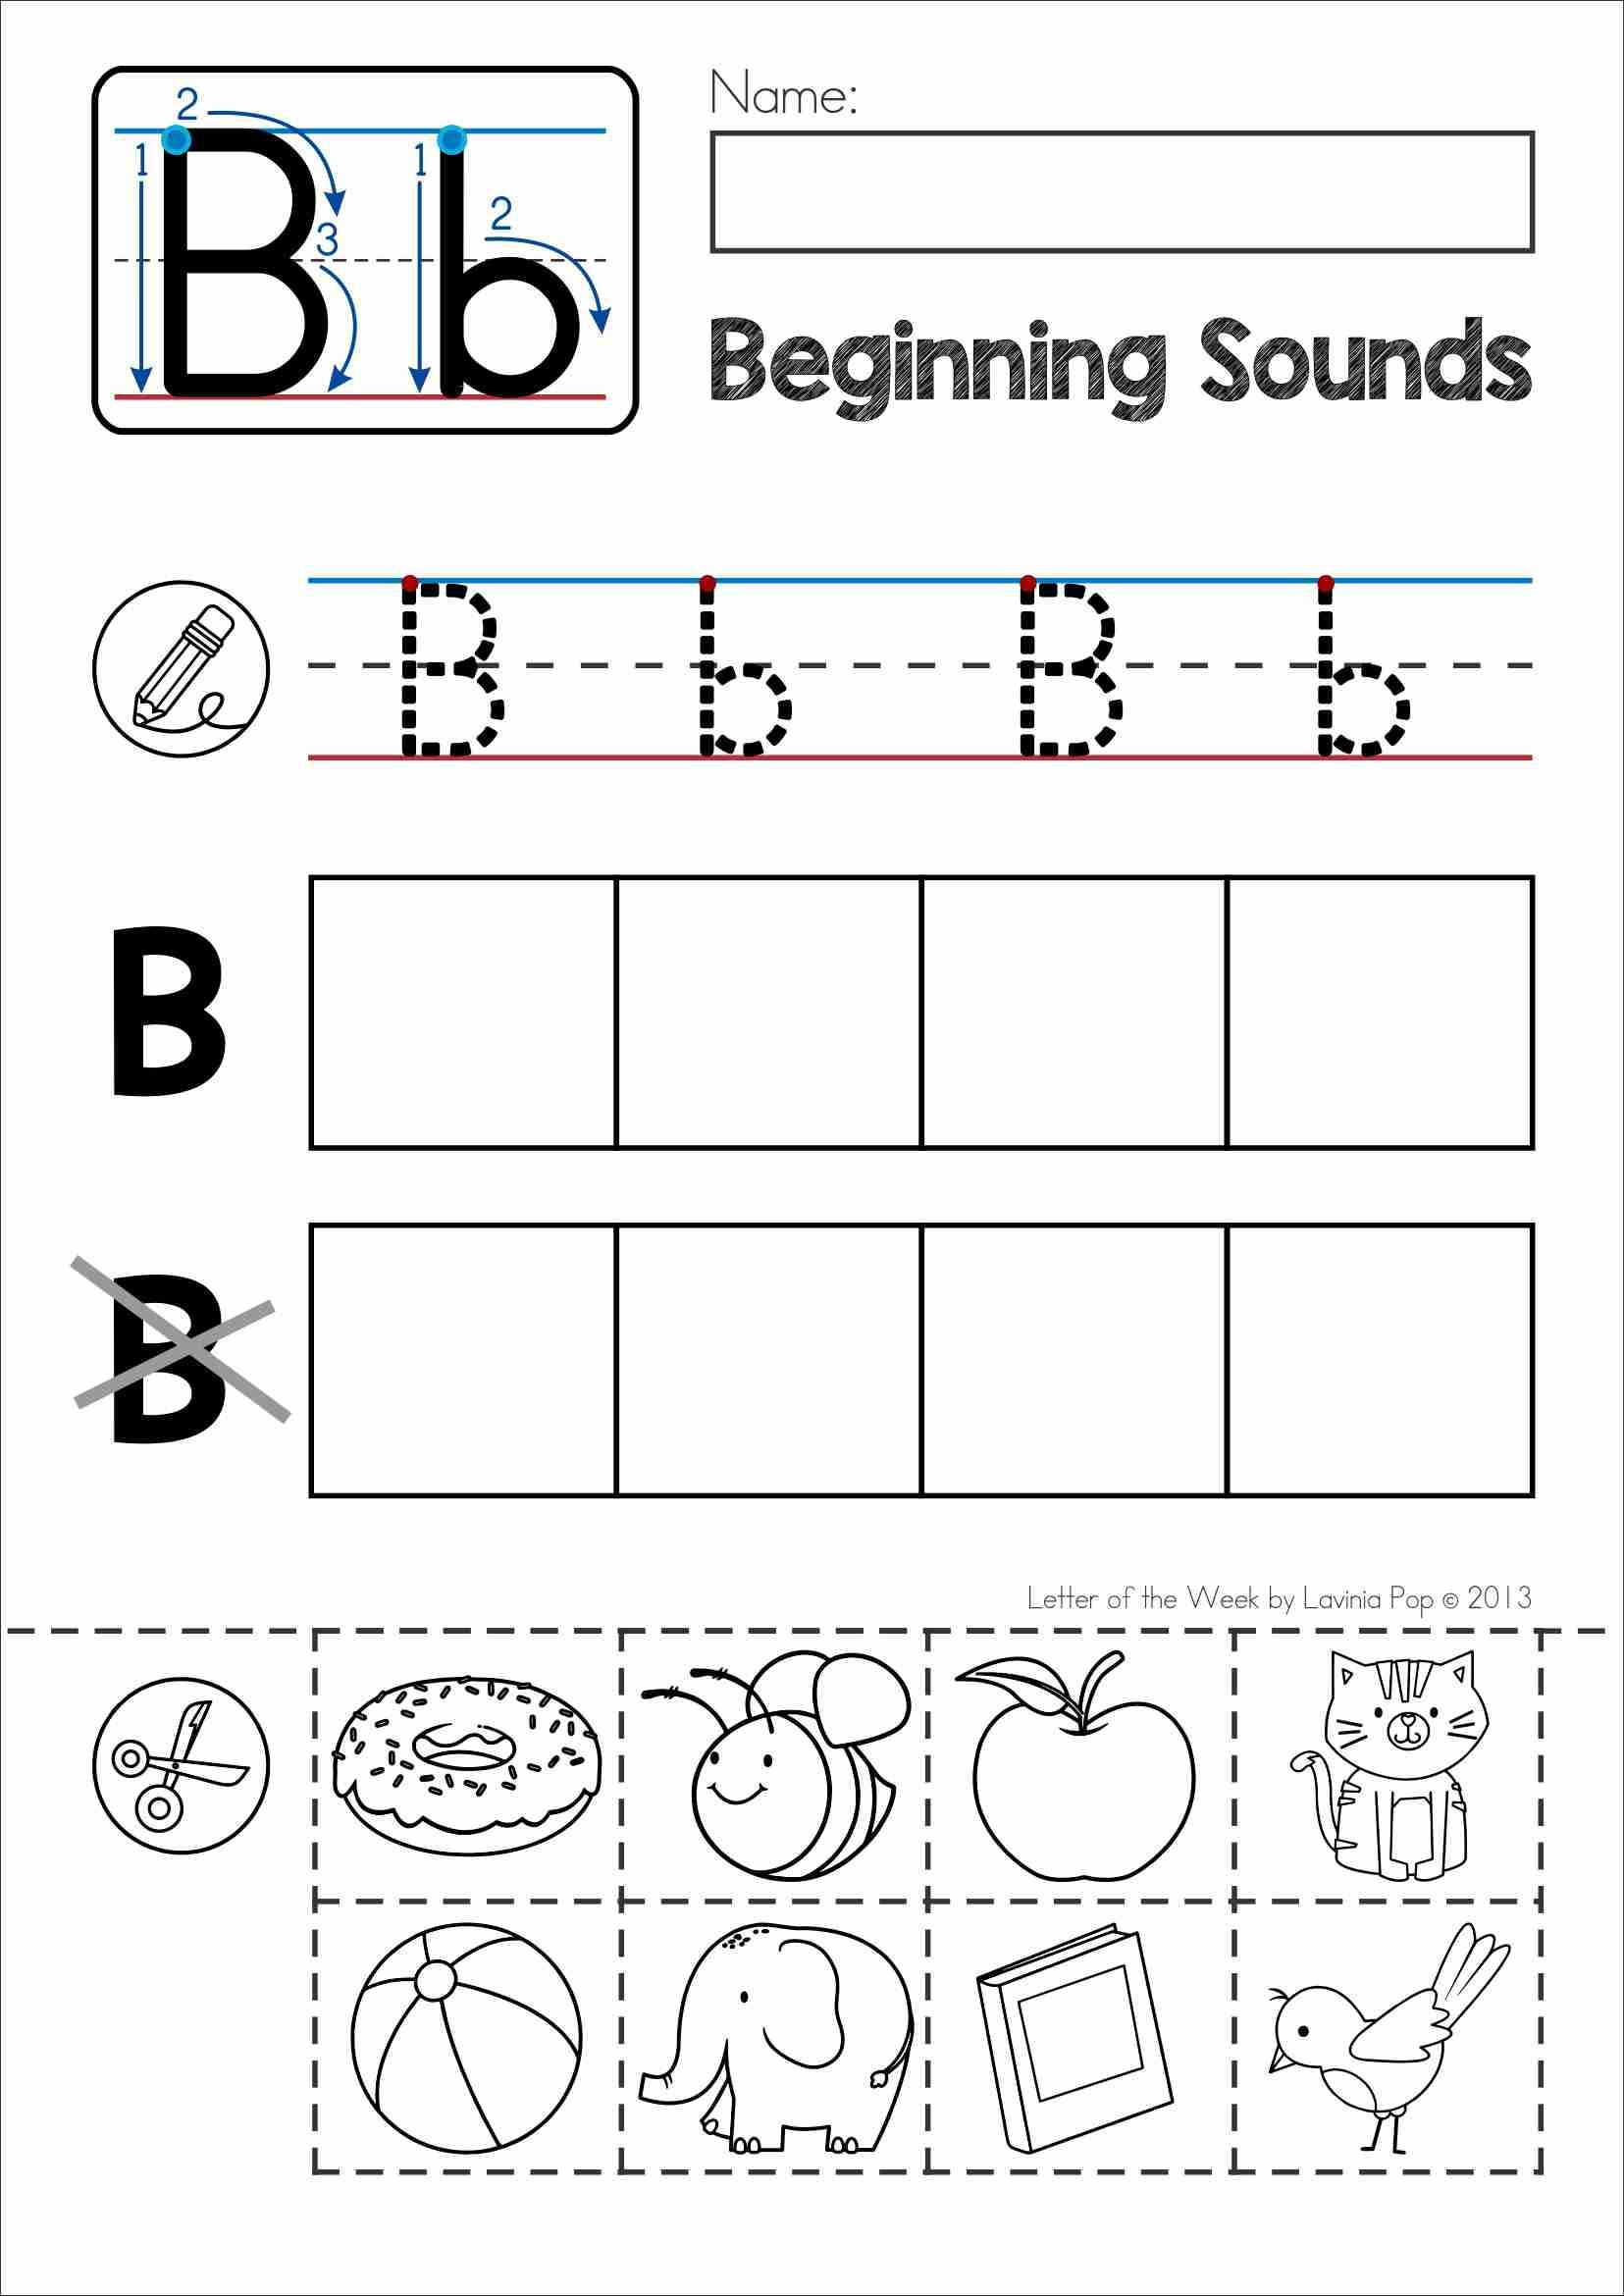 Worksheets Beginning Sounds Worksheet free phonics letter of the week b beginning sounds cut and paste paste